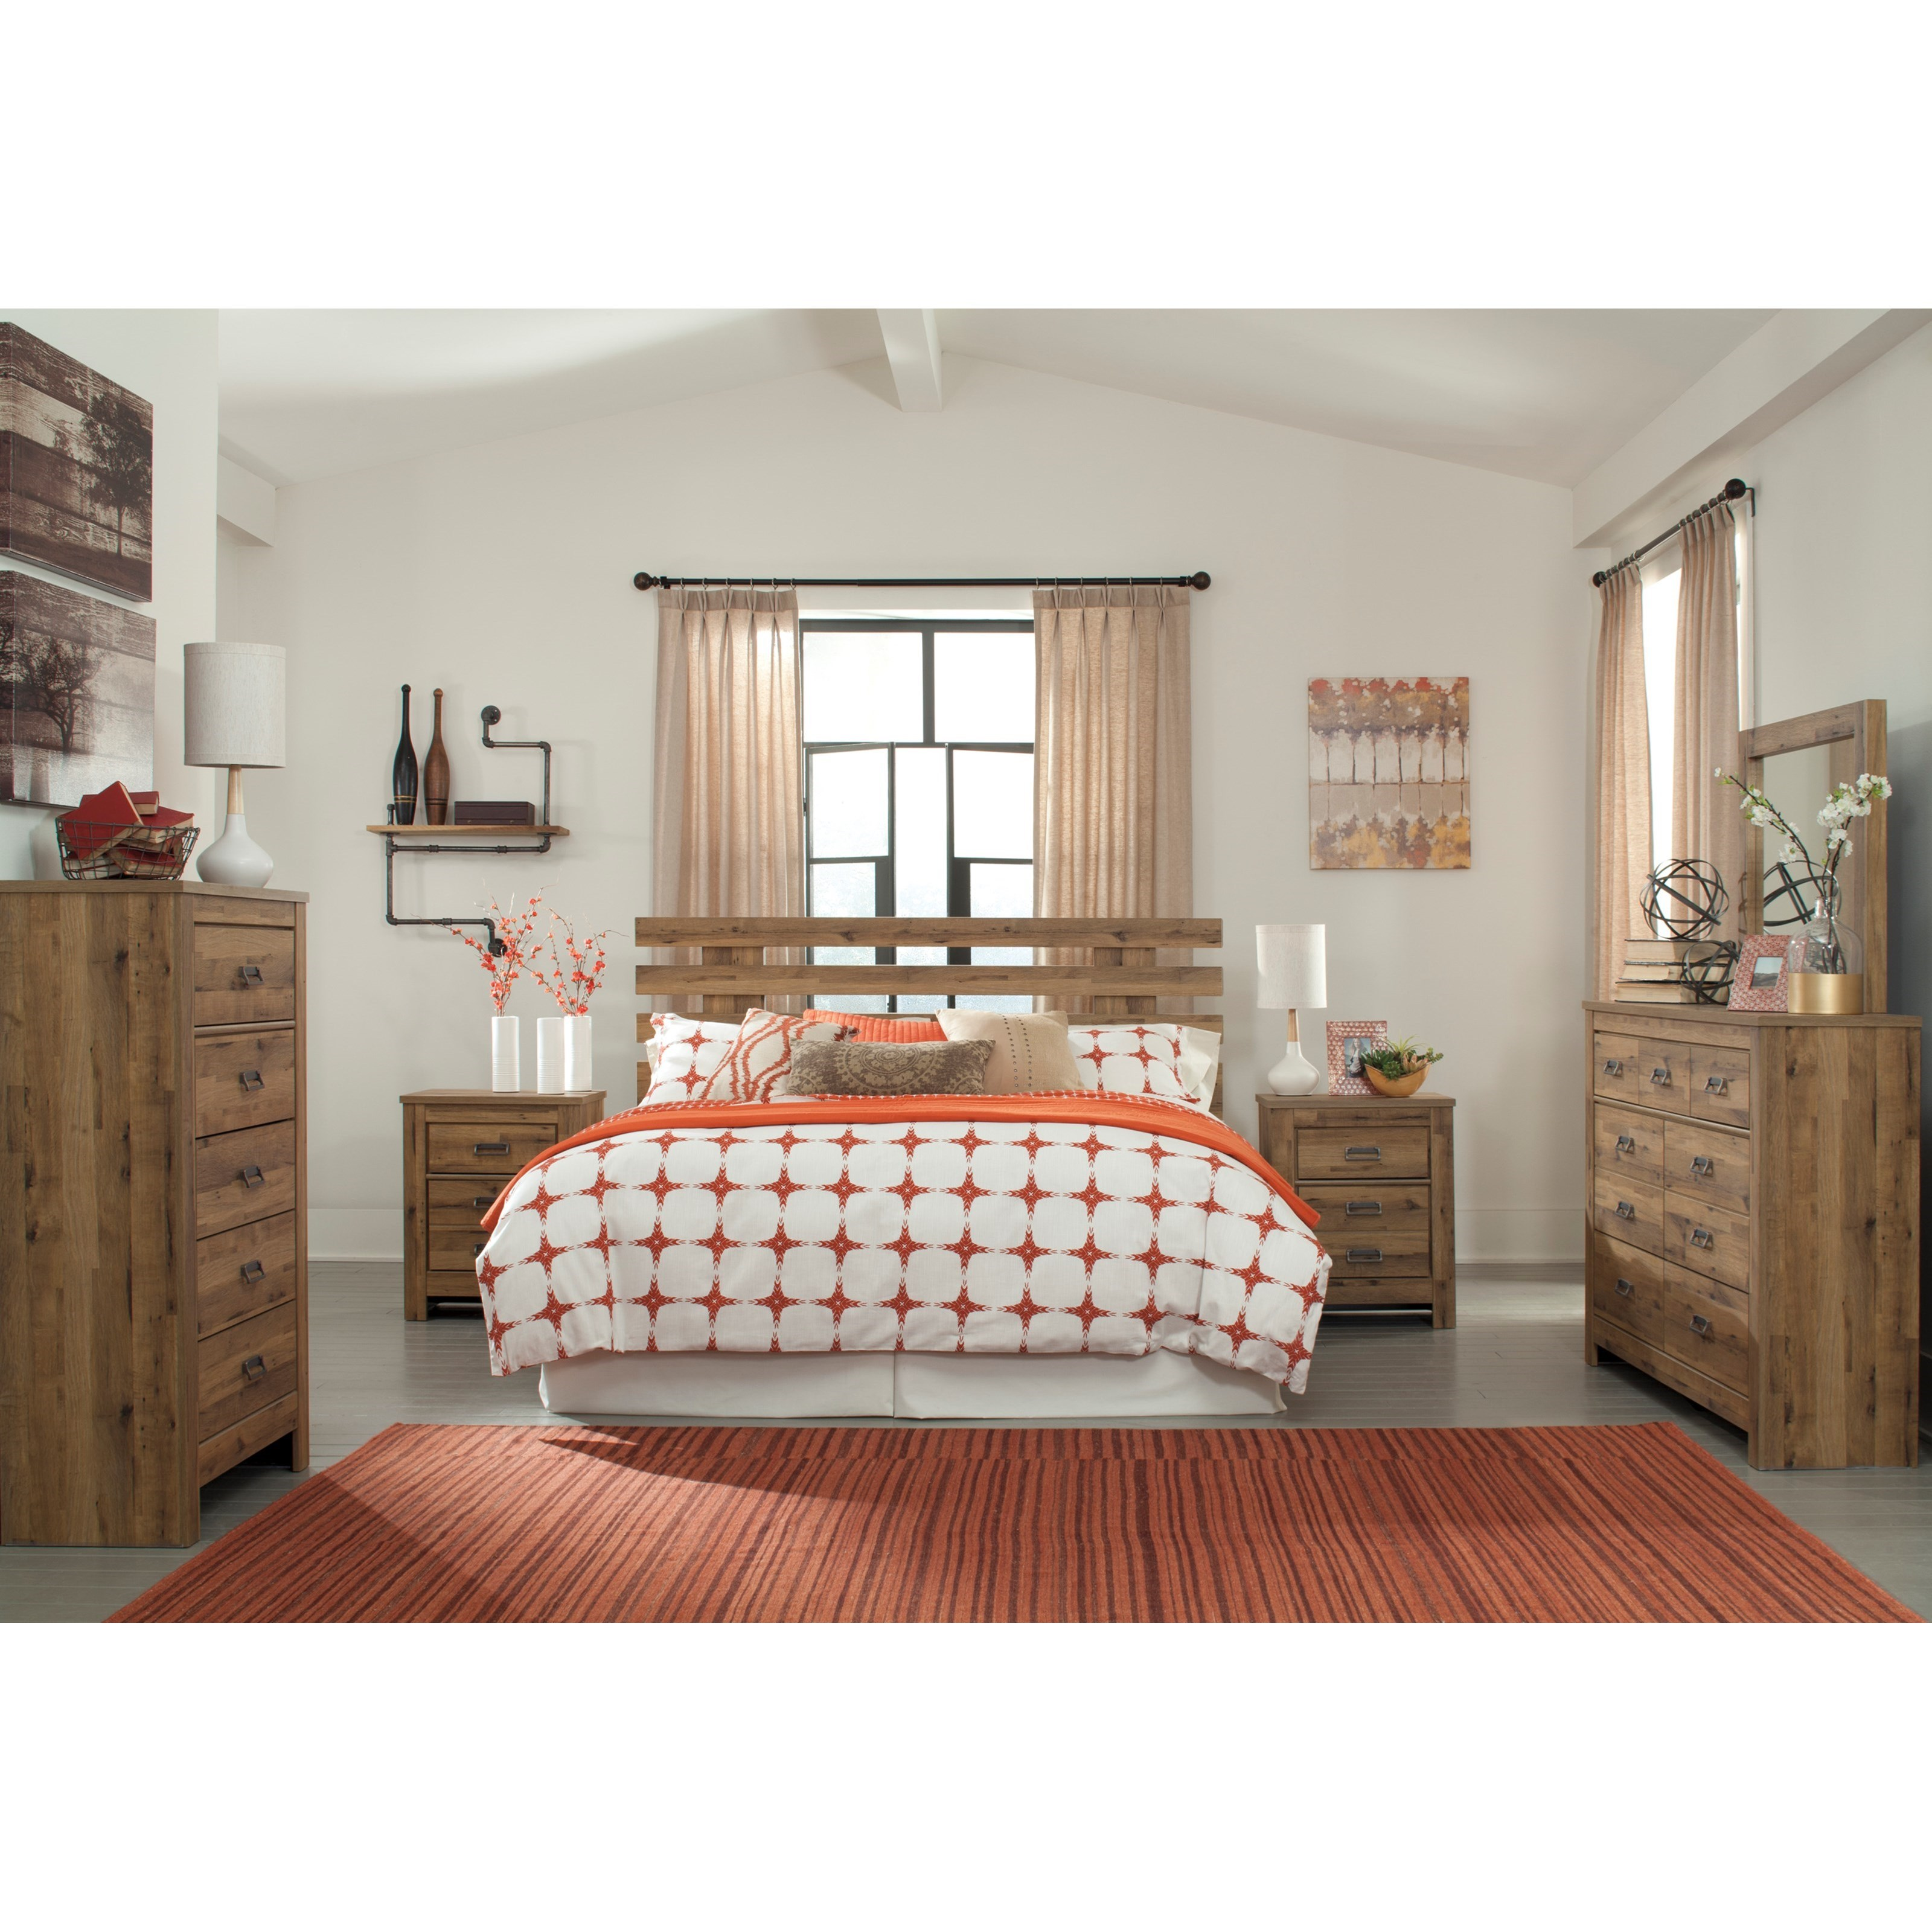 Signature Design by Ashley Cinrey King Bedroom Group - Item Number: B369 K Bedroom Group 1